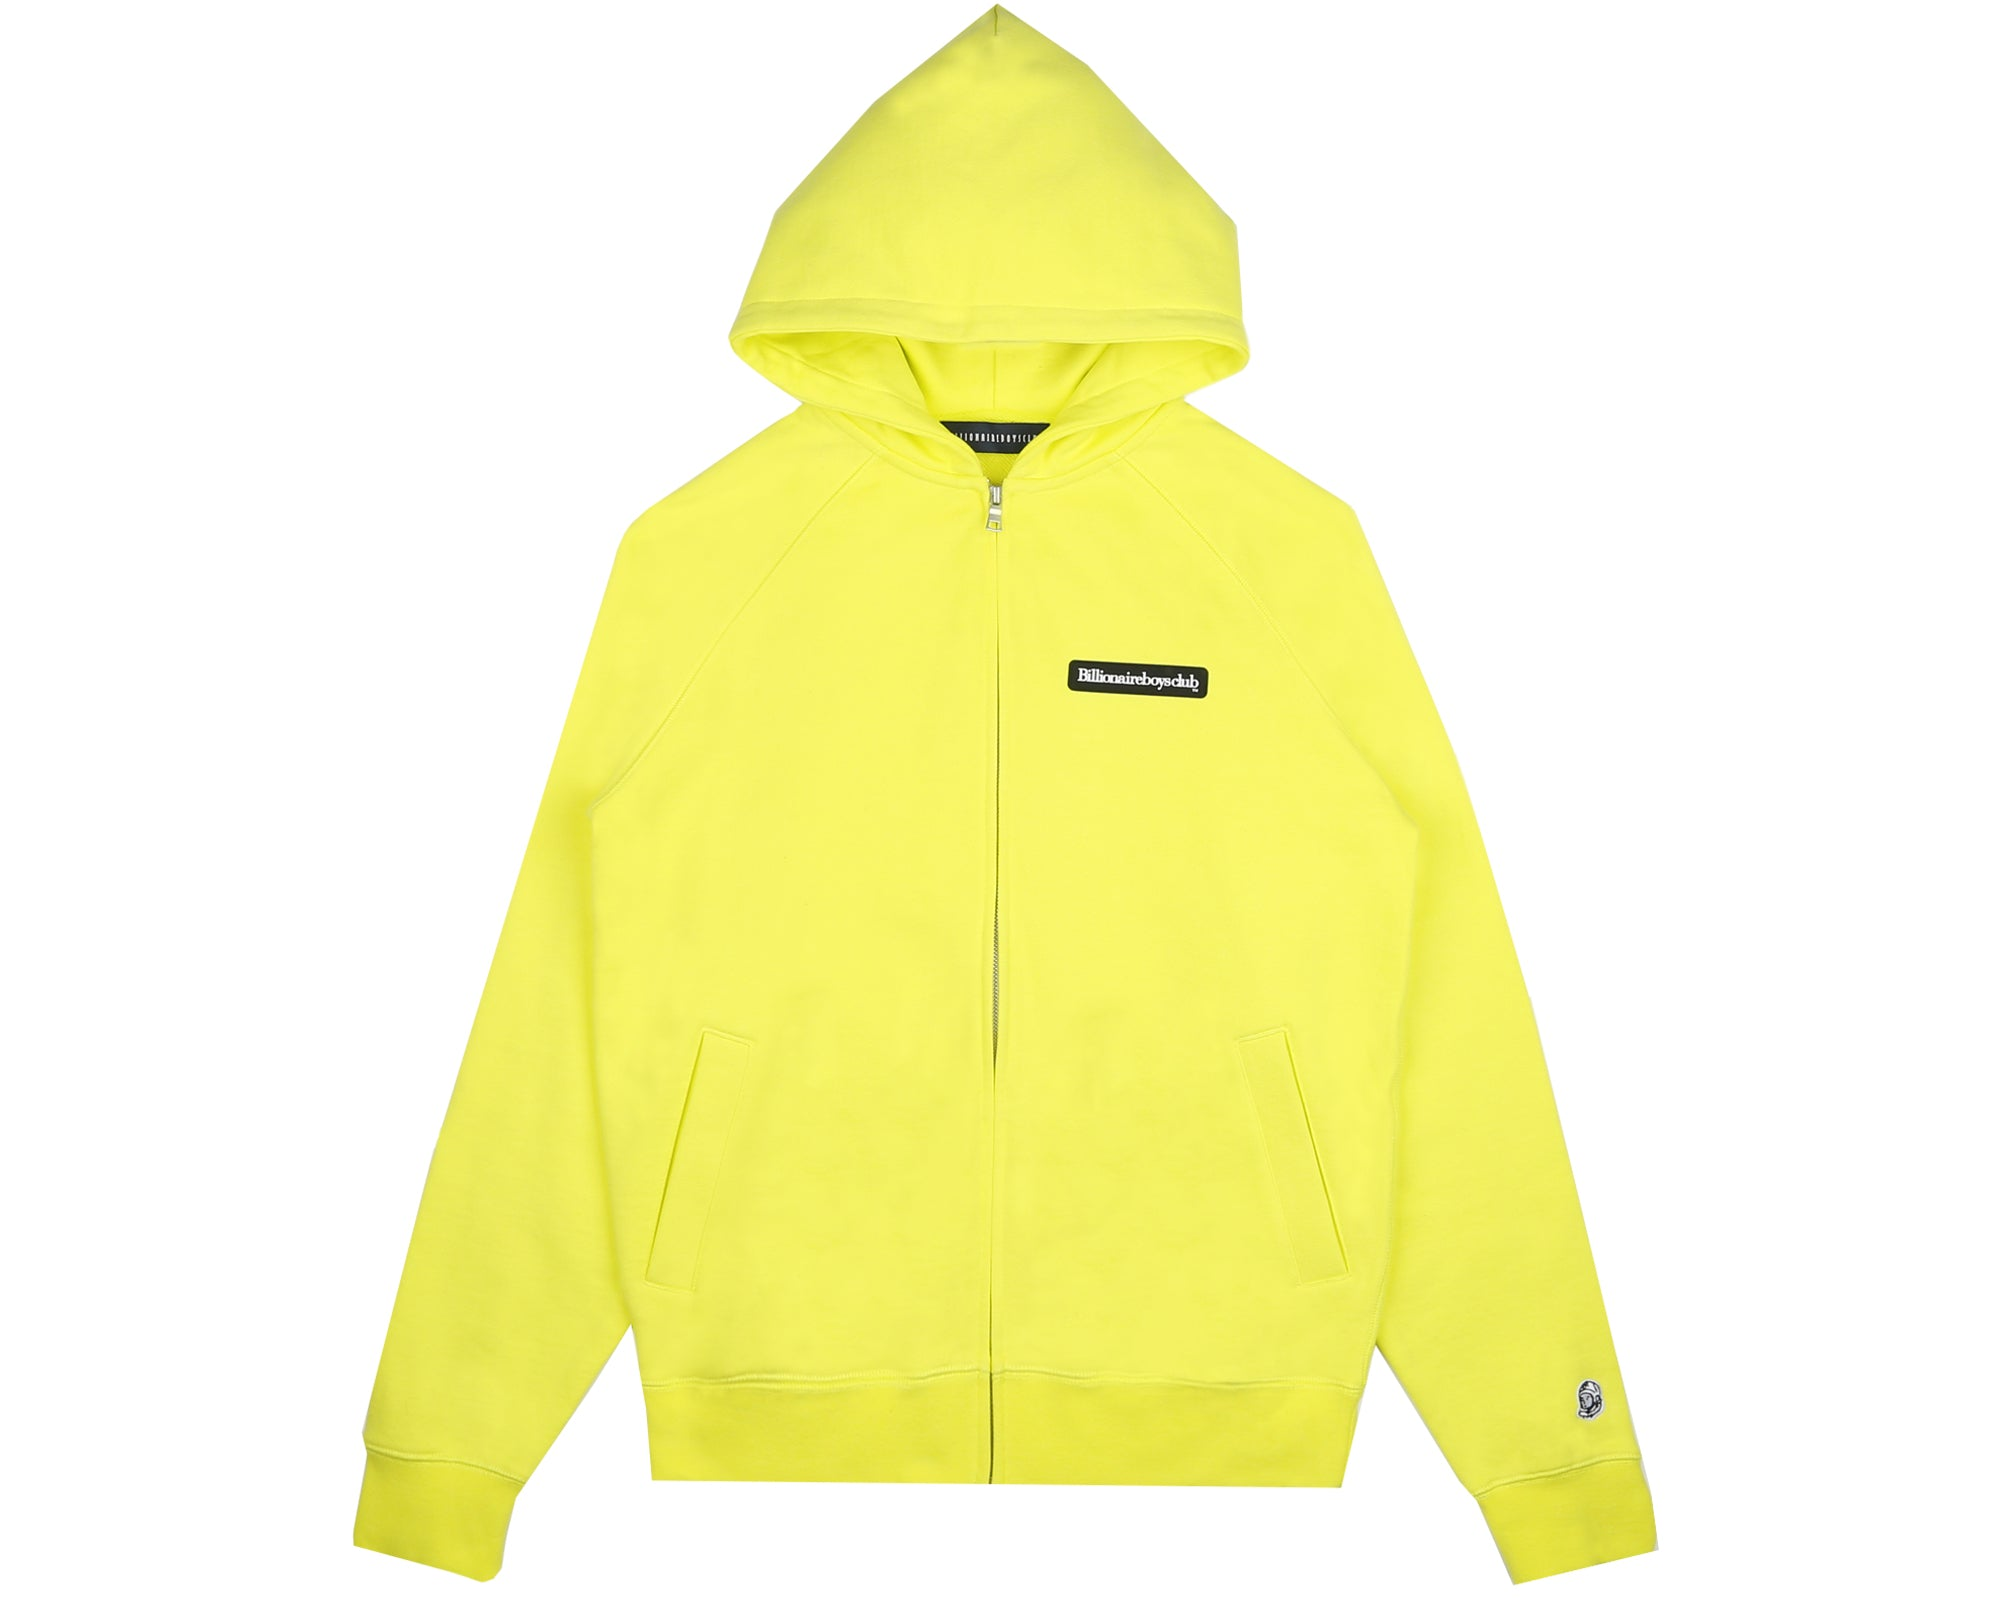 RUBBERISED LOGO ZIP THROUGH HOOD - YELLOW